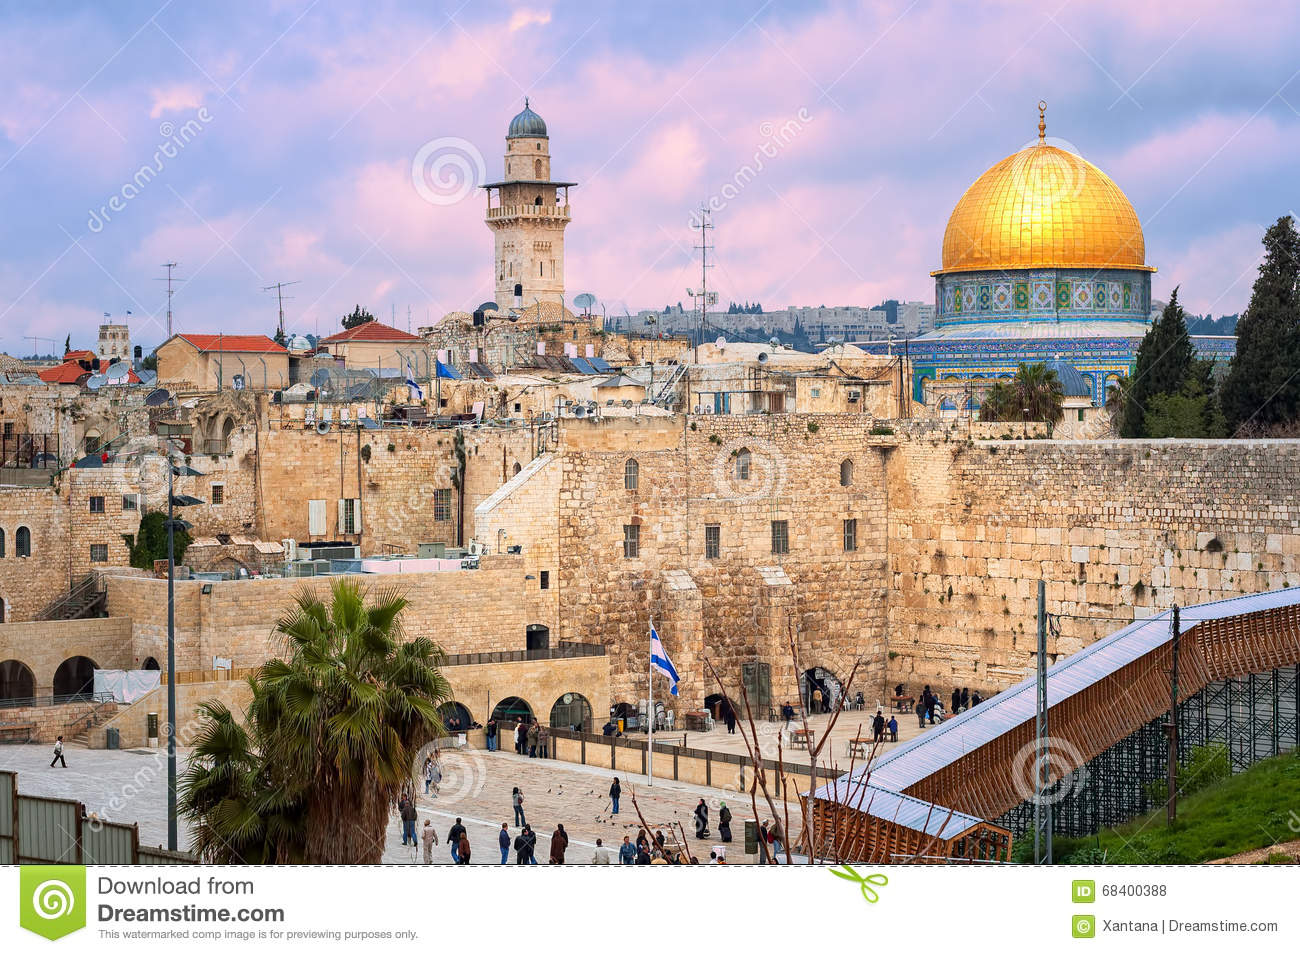 Western Wall and The Dome of the Rock, Jerusalem, Israel